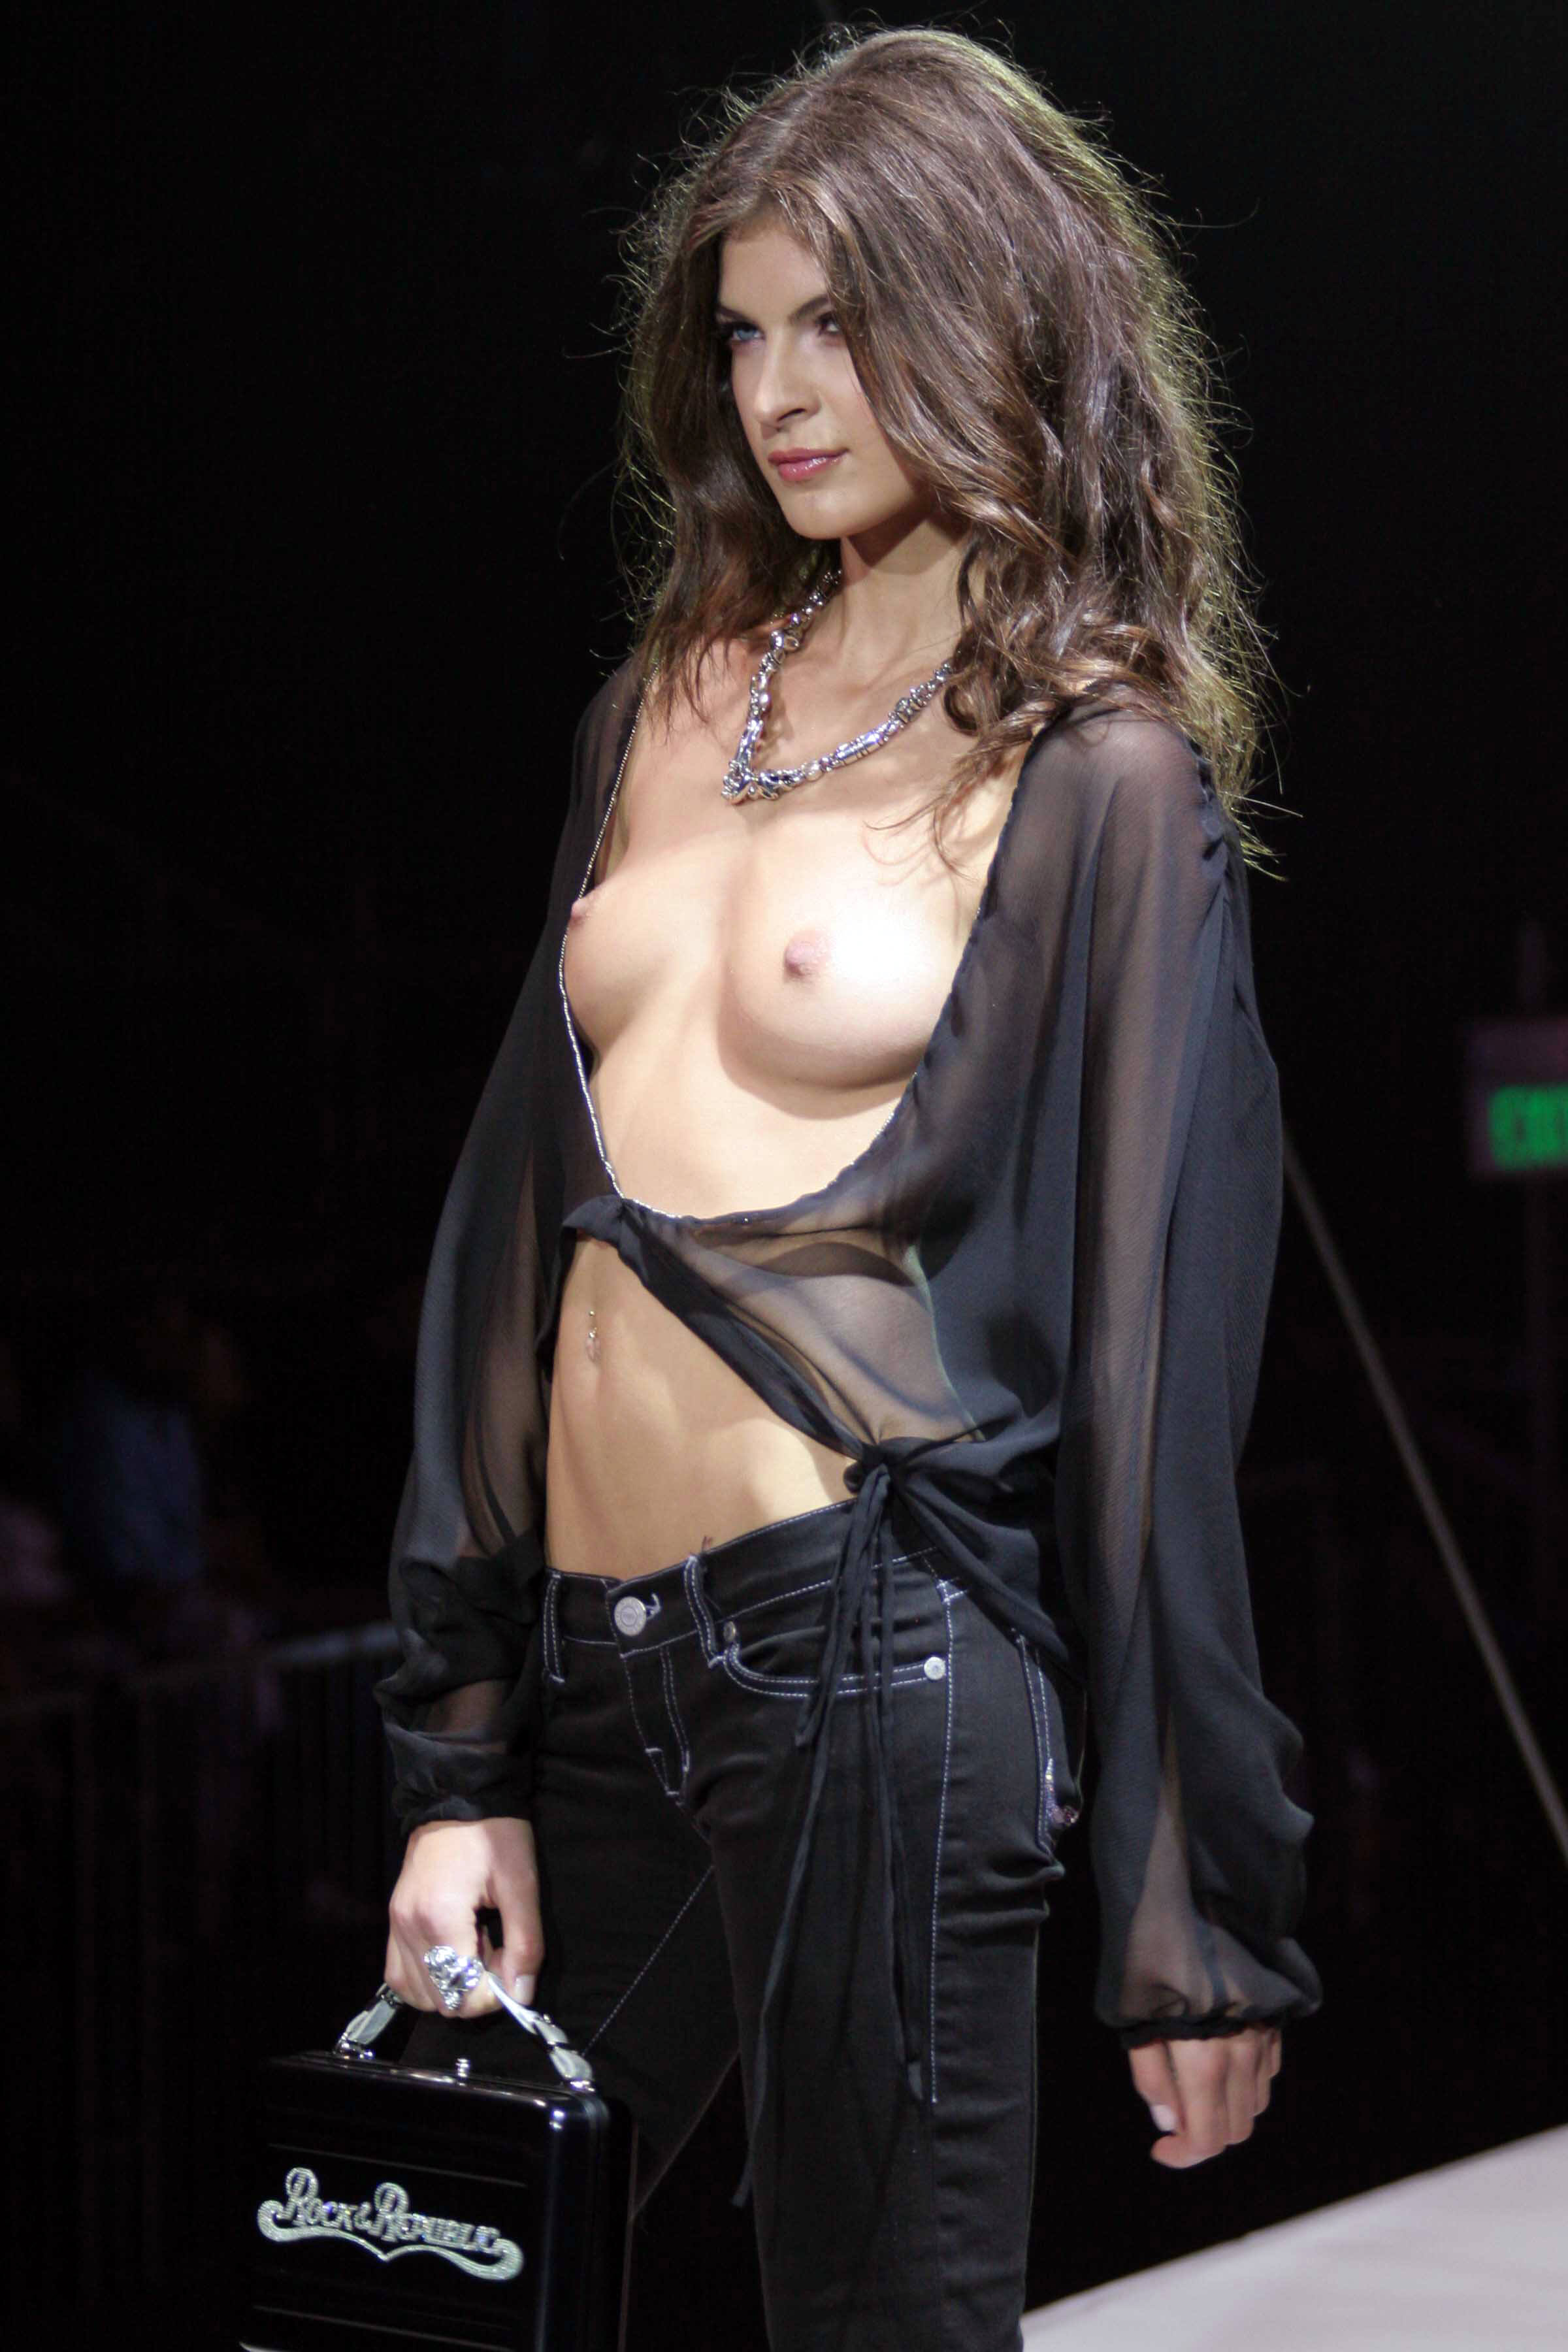 Topless fashion show